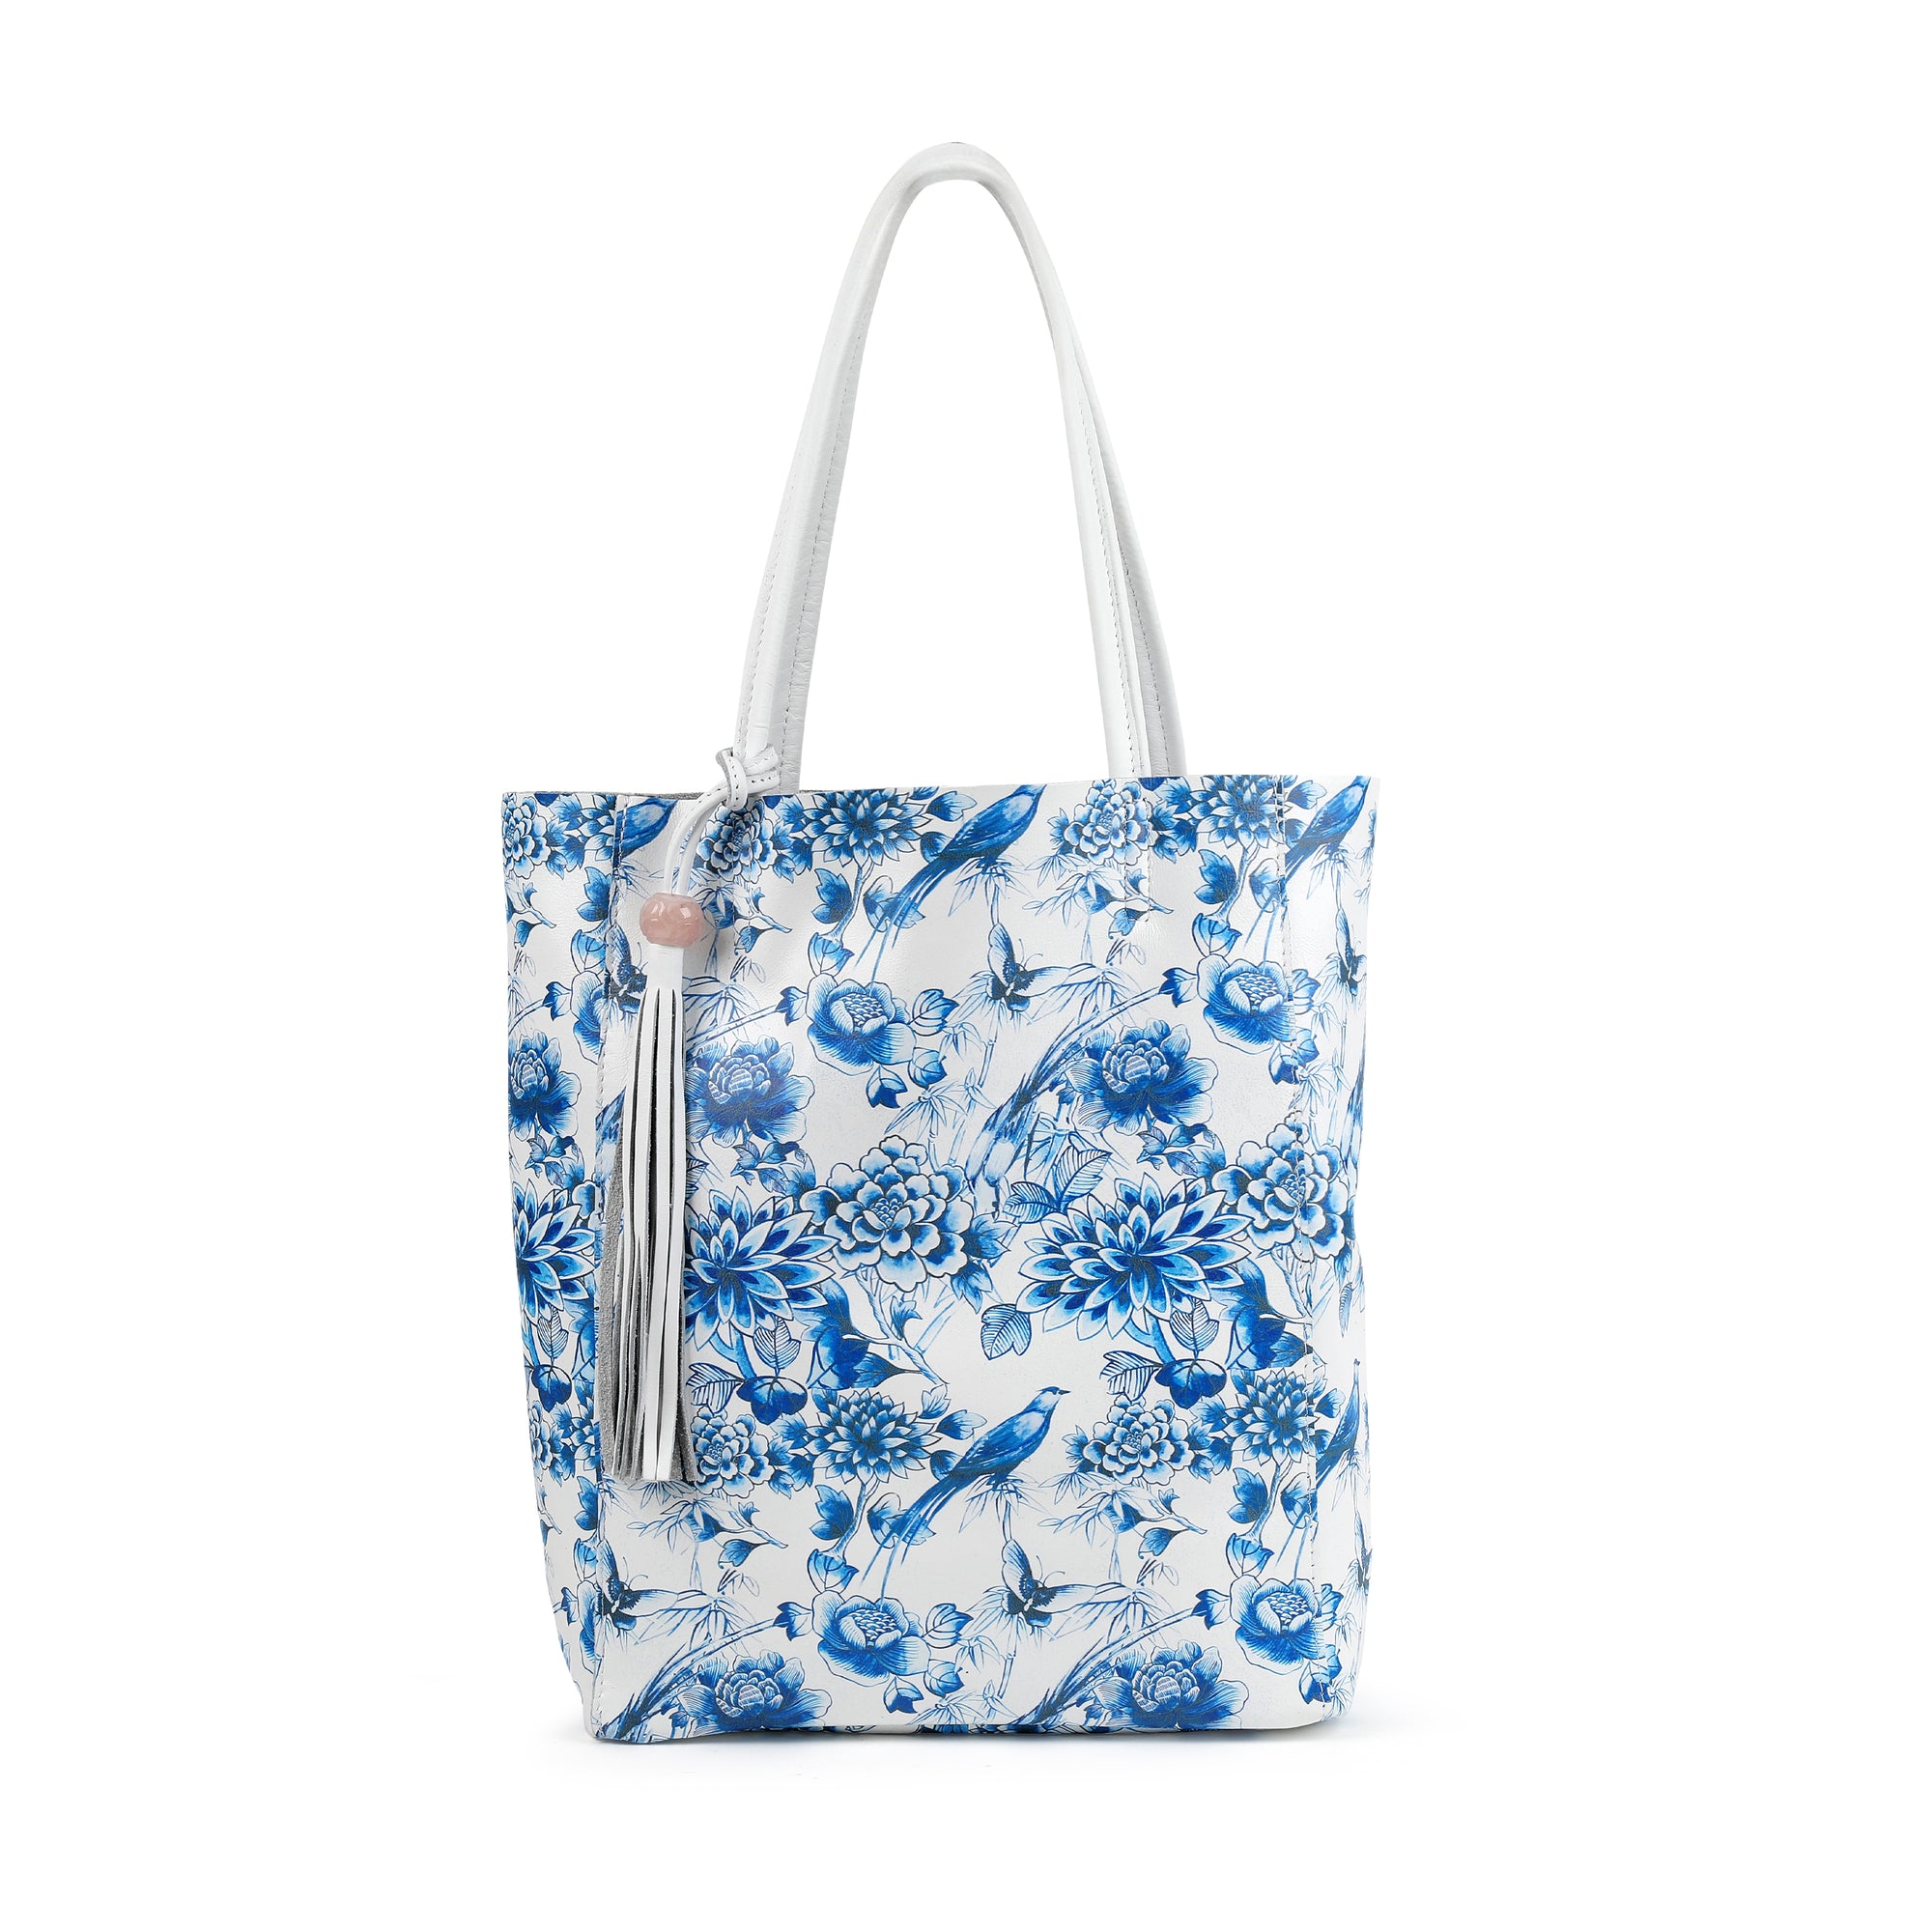 The Italian Leather Knot Shoulder Bag with Rose Quartz in Navy Blue $255